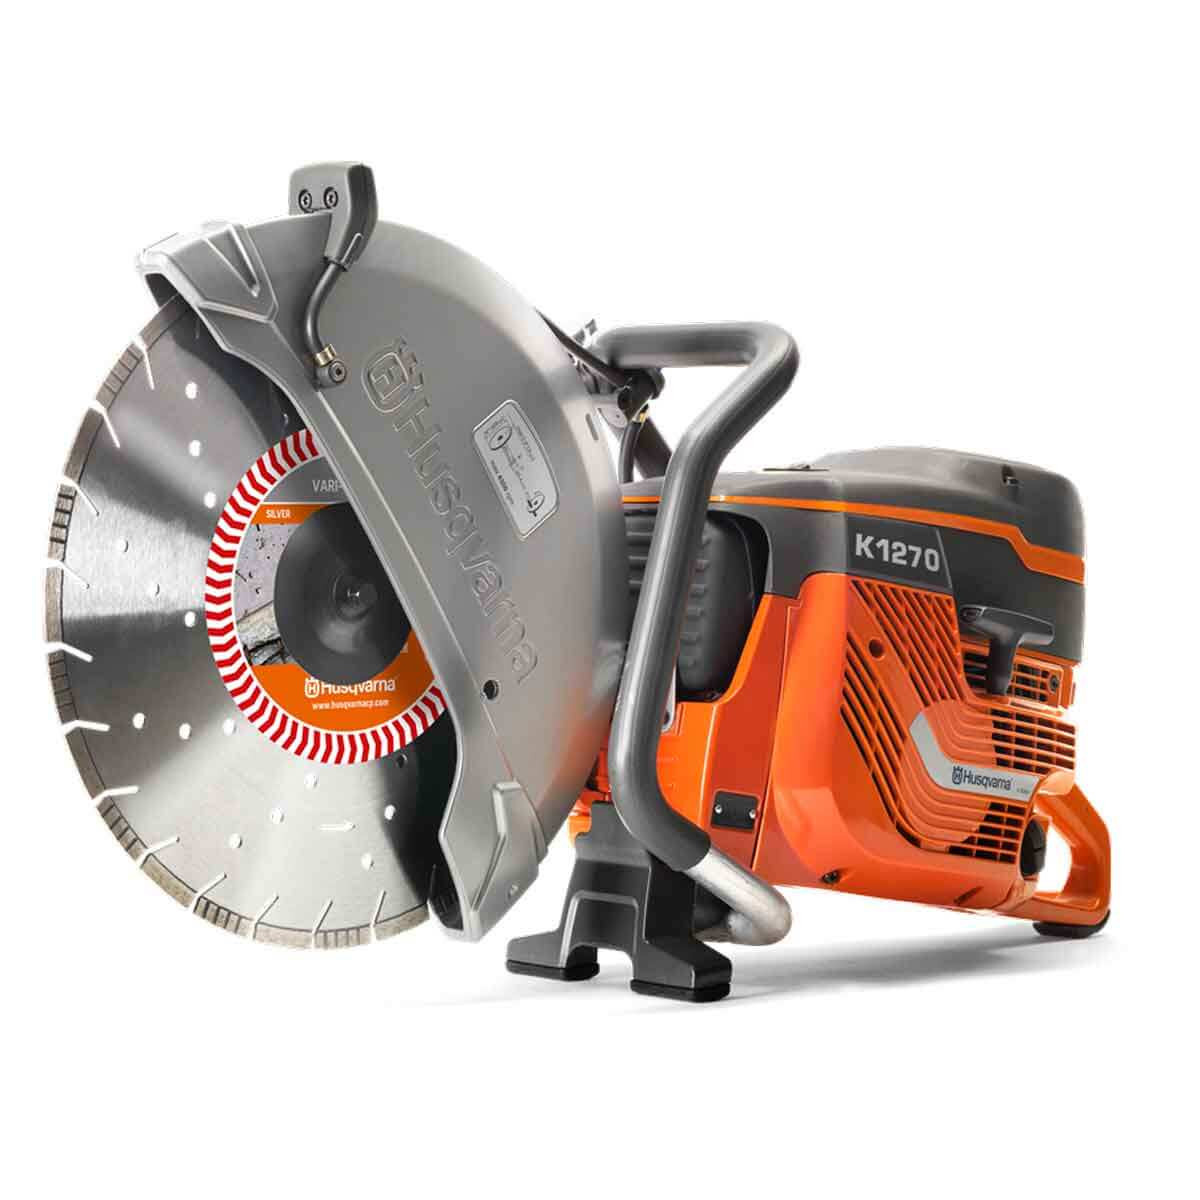 Husqvarna K1260 Concrete Saw